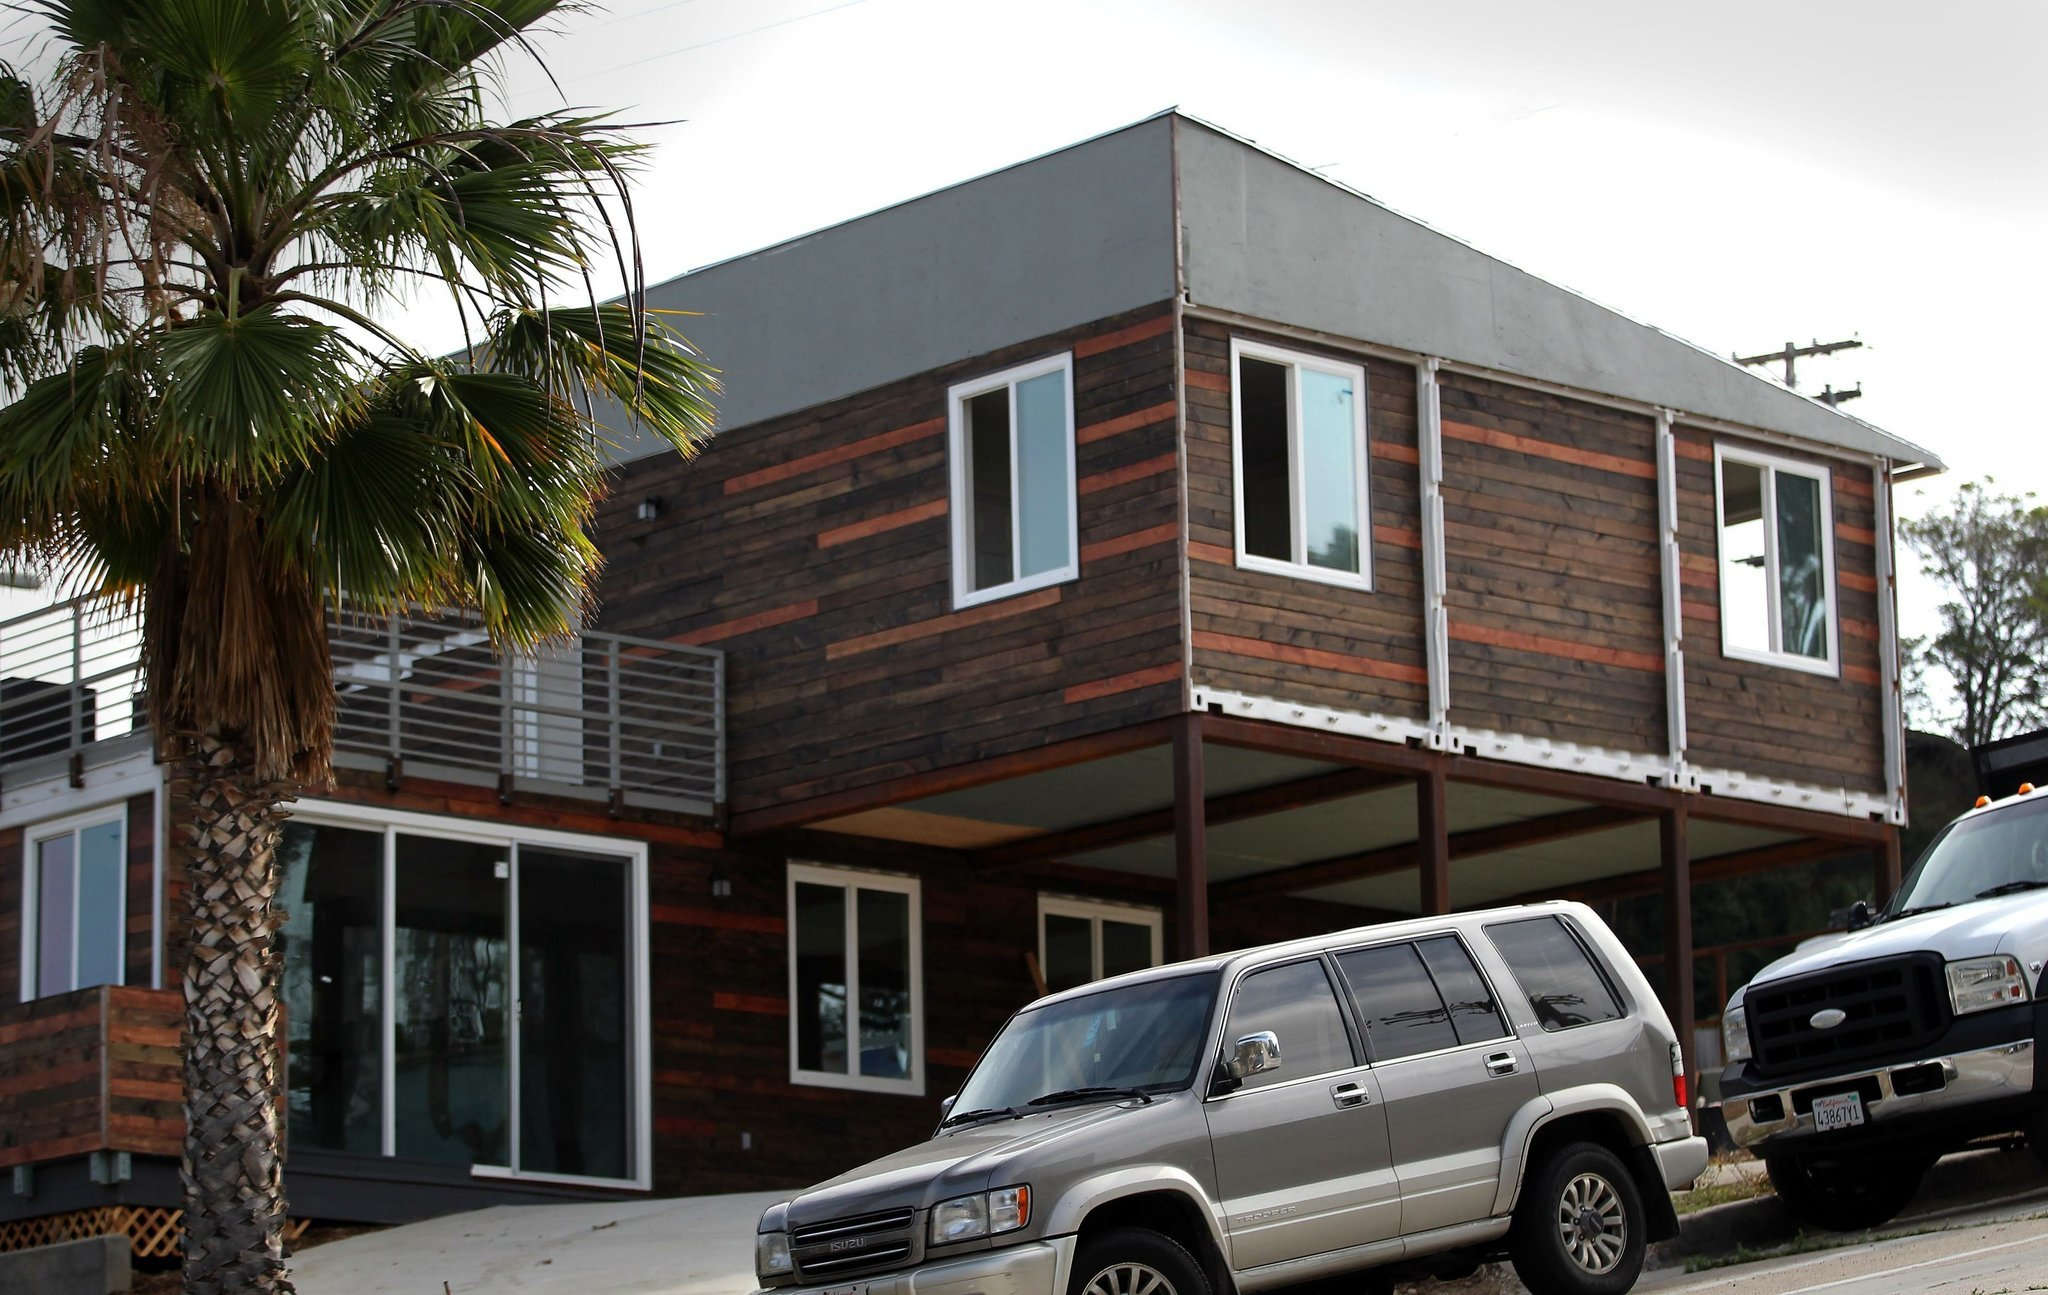 San diego 39 s newest container home the san diego union - Container homes san diego ...